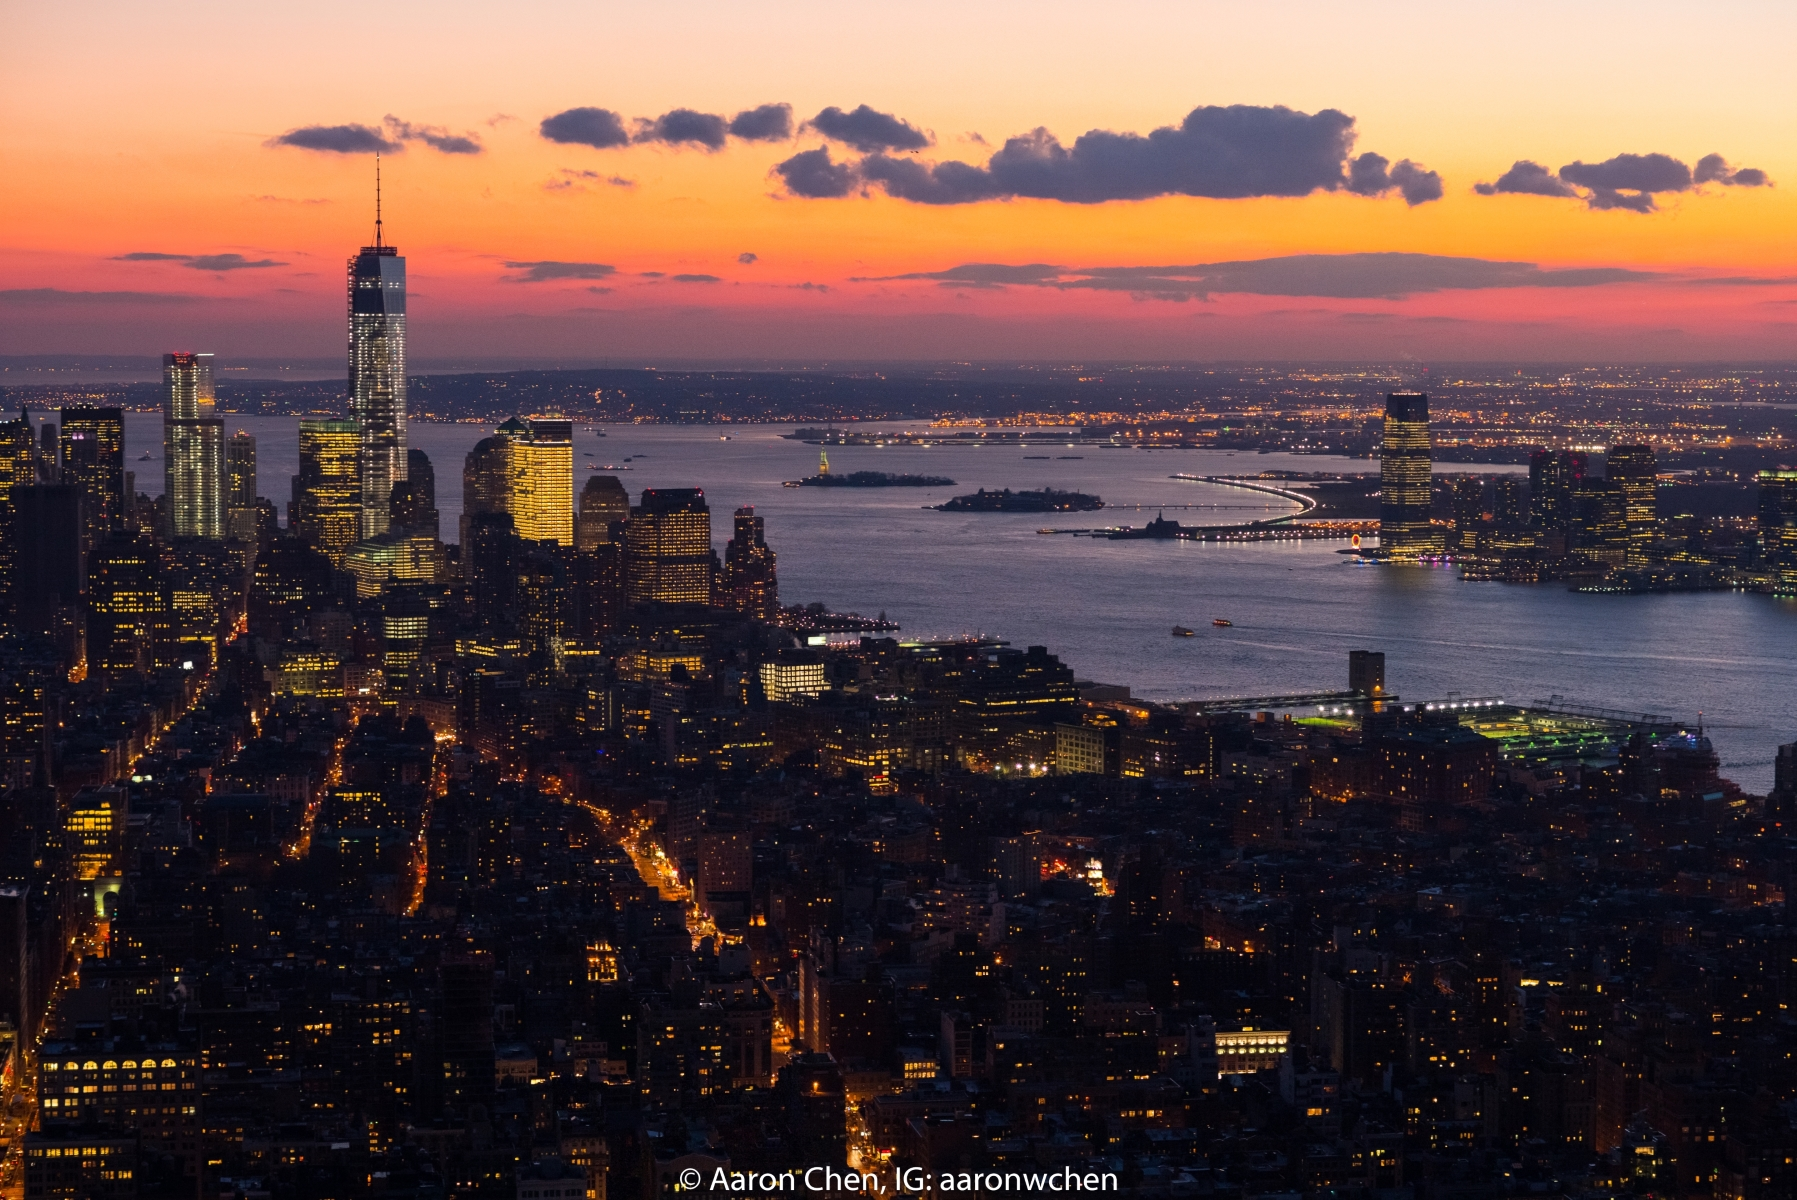 'Sunset from the Empire State Building' (TB 1 Place) by Aaron Chen - SC